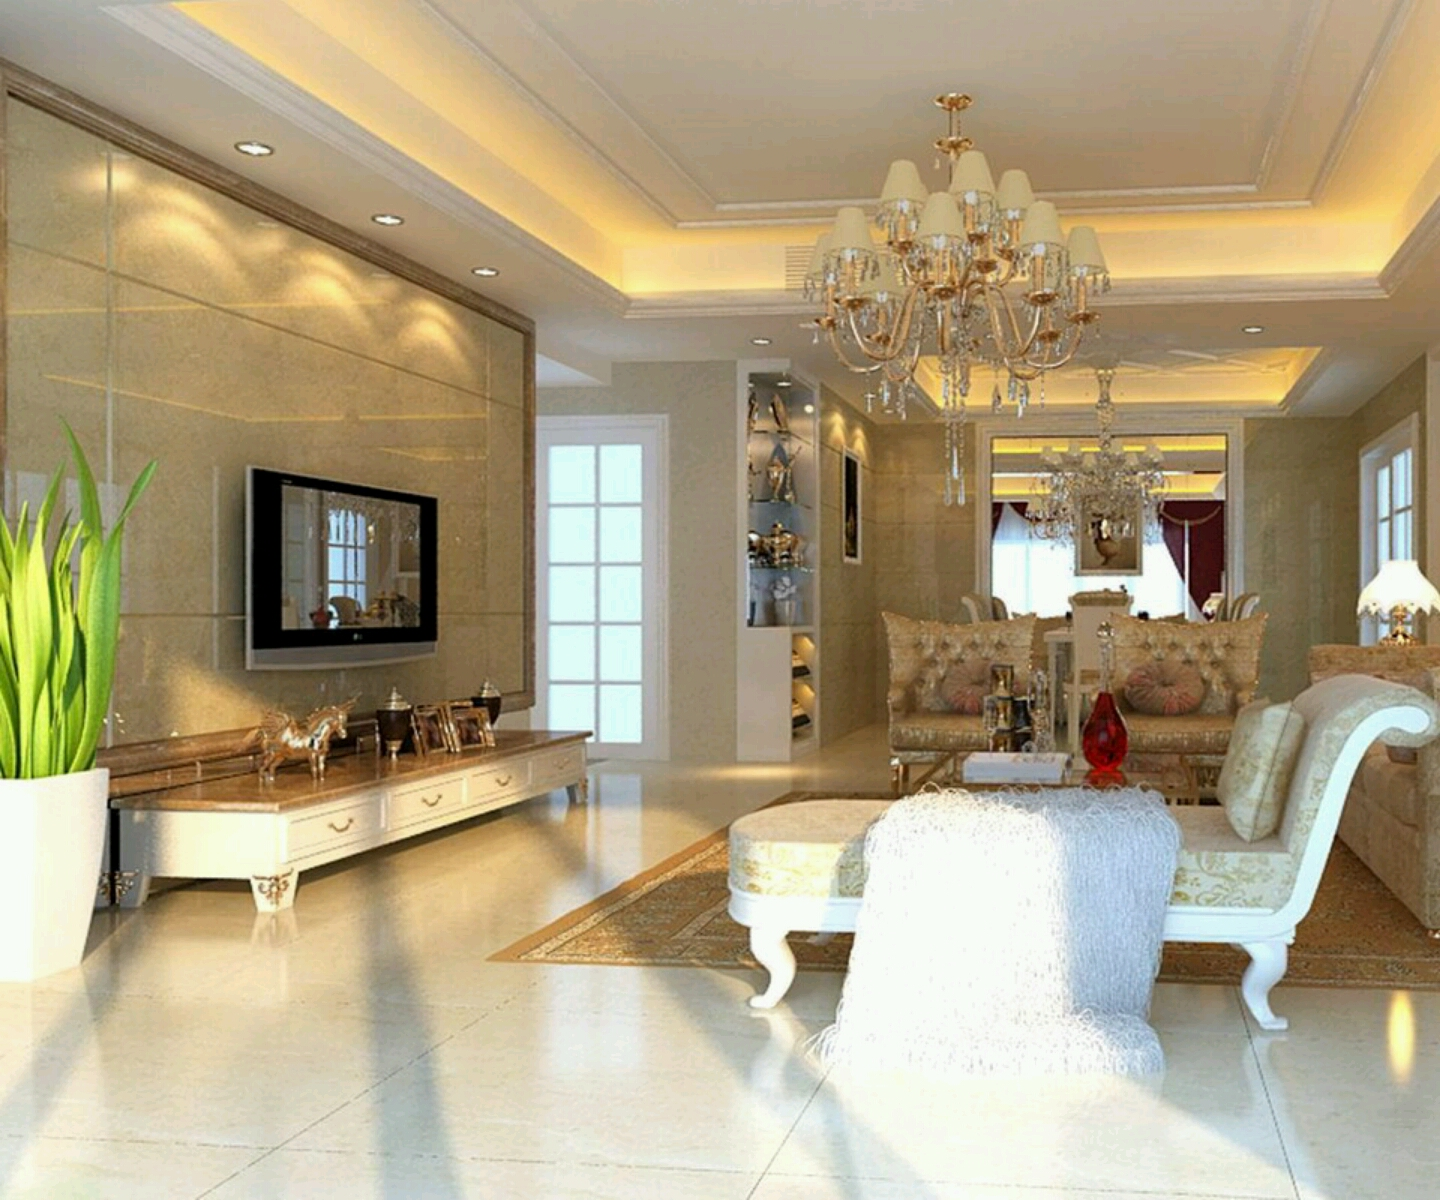 Home decor 2012 luxury homes interior decoration living for Home decor drawing room